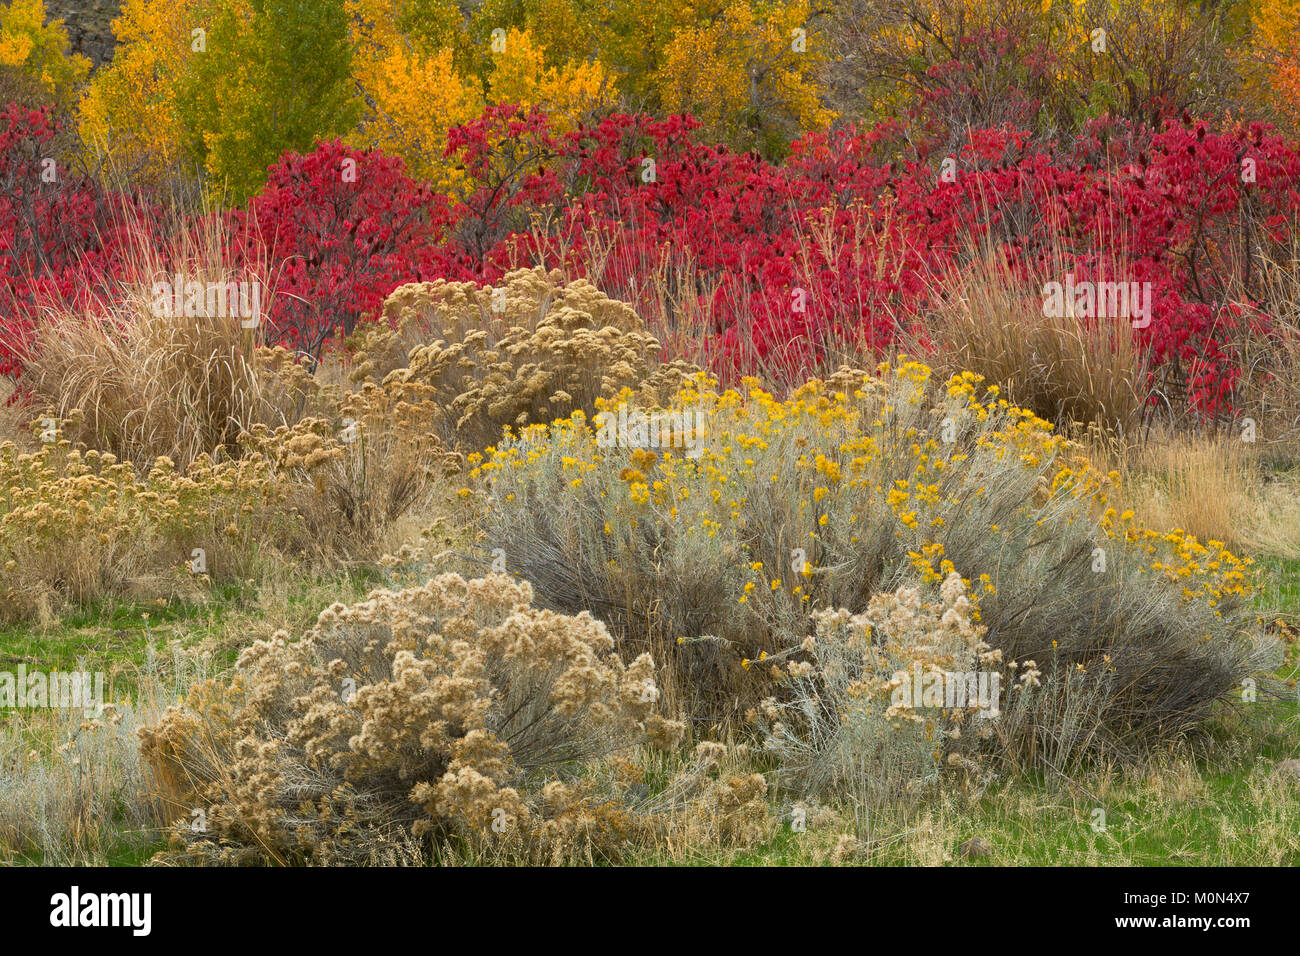 A wild garden of plants along a streambed in the Great Basin Desert ...